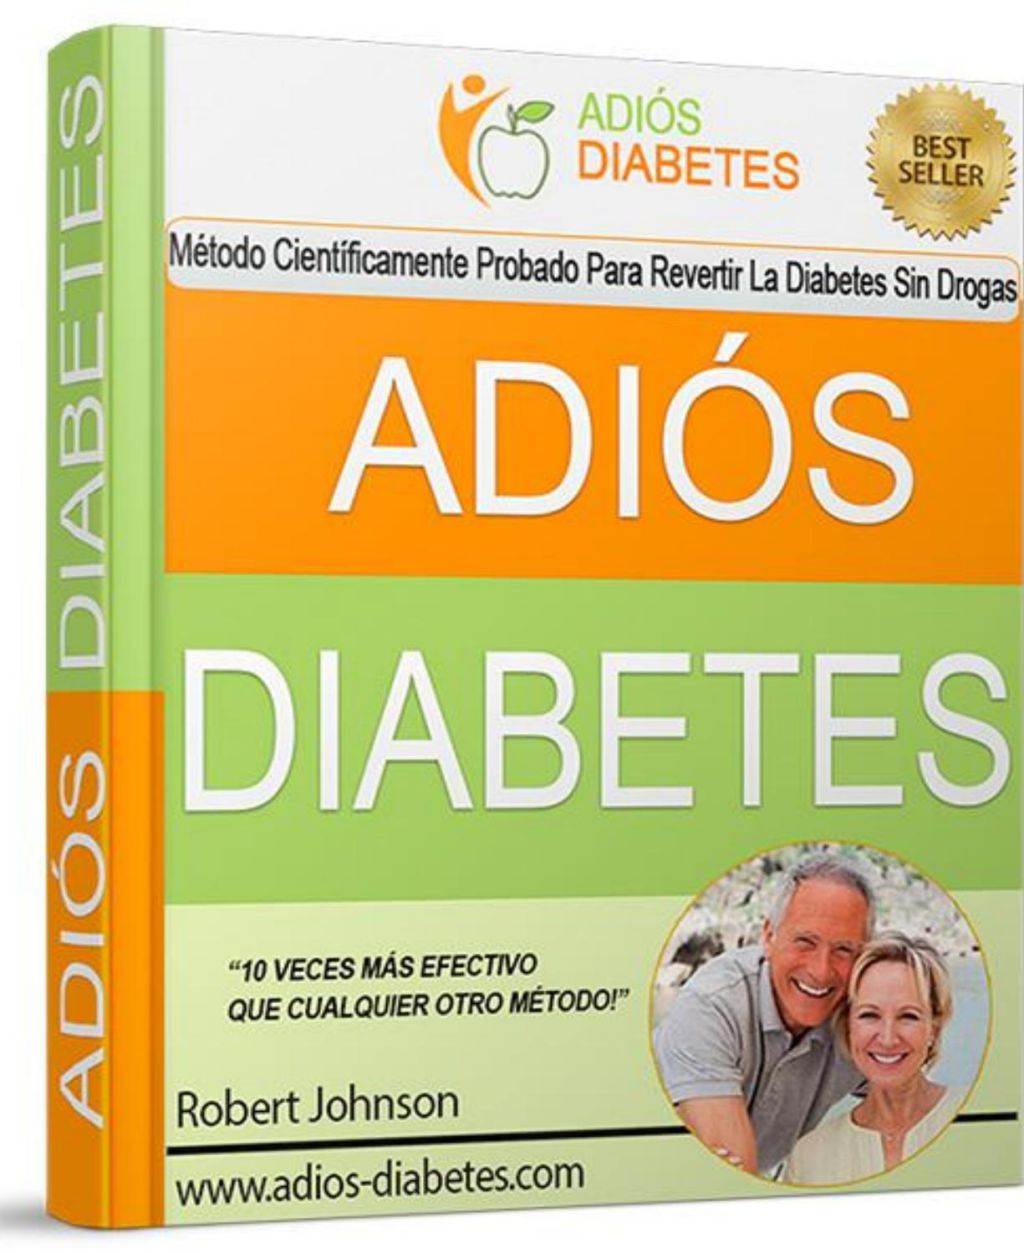 Libros De Diabetes Libro Codigo Diabetes Pdf Gratis